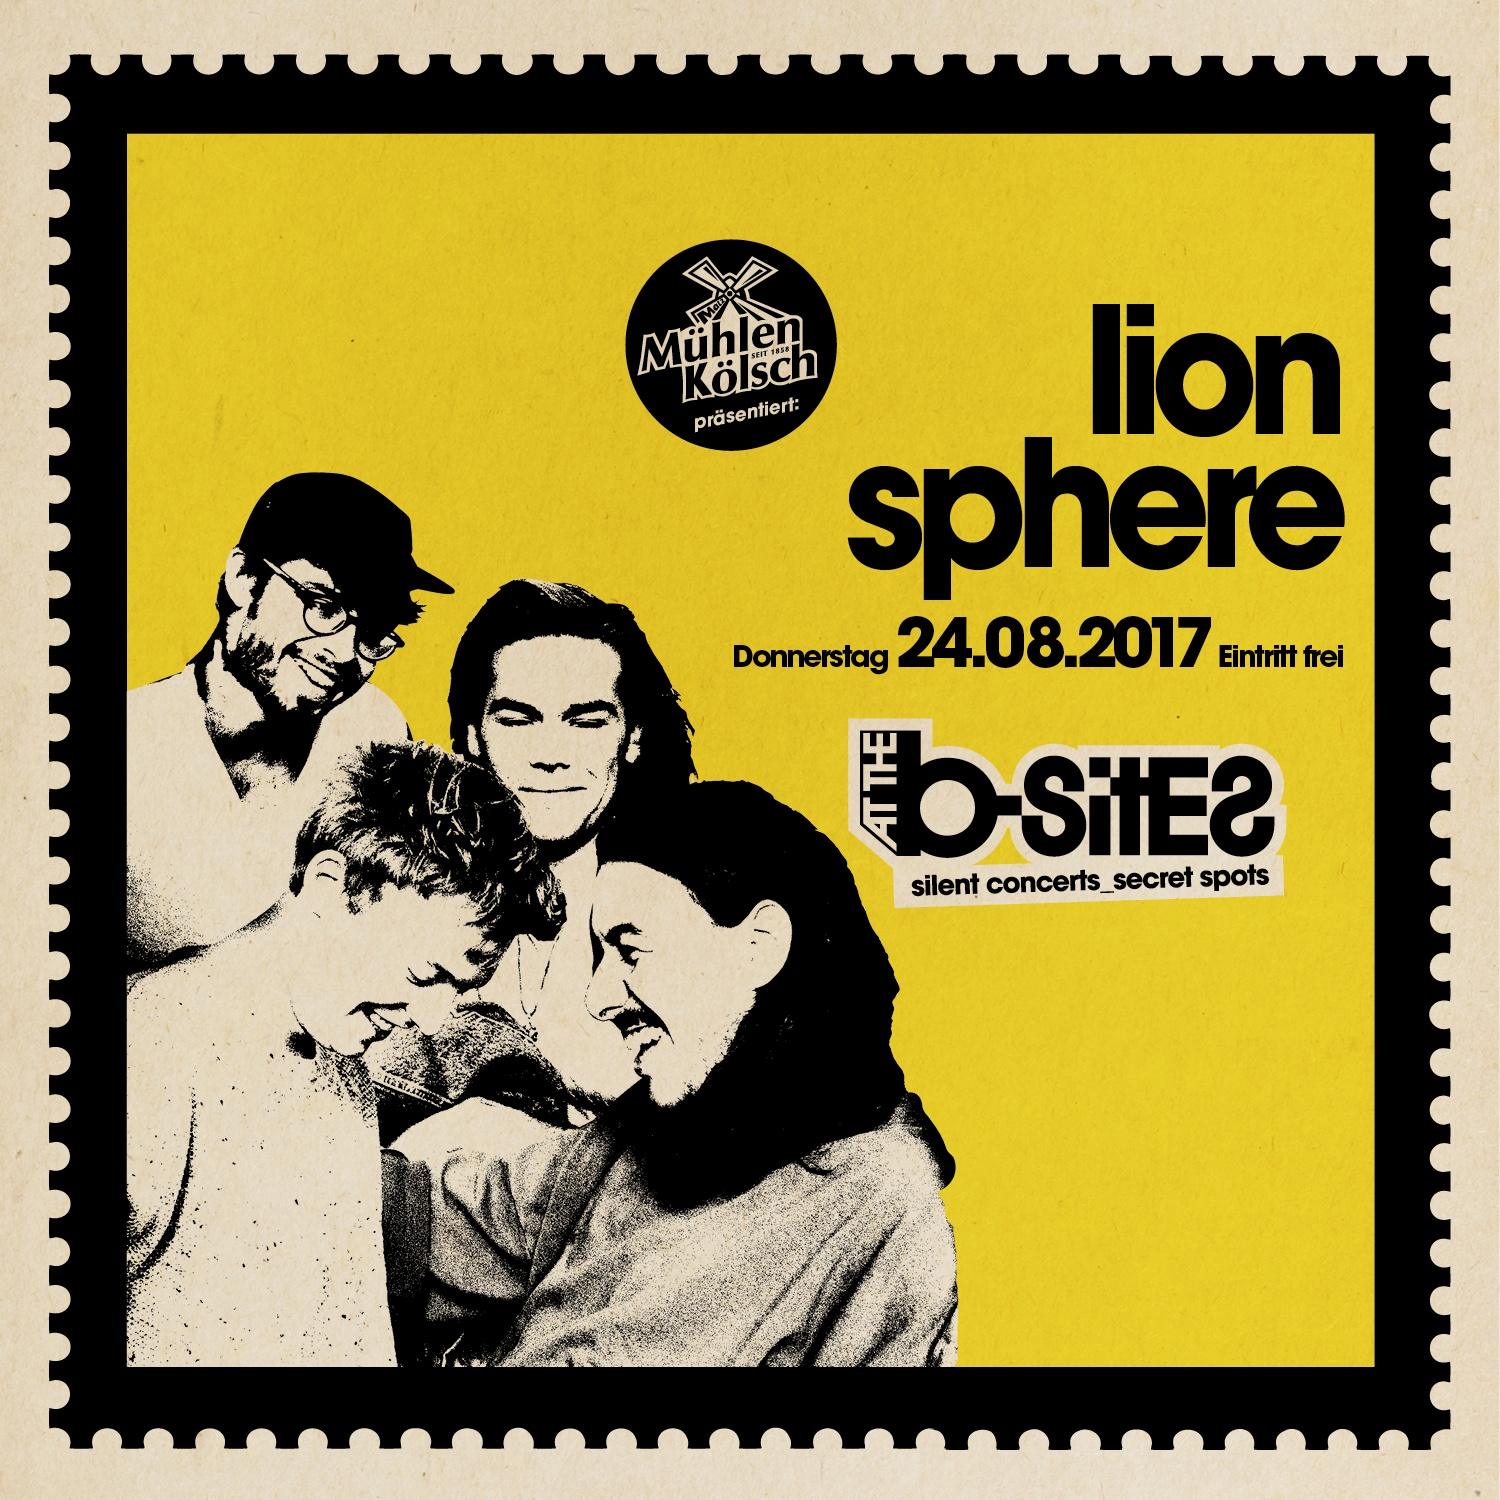 LION SPHERE at the b-sites